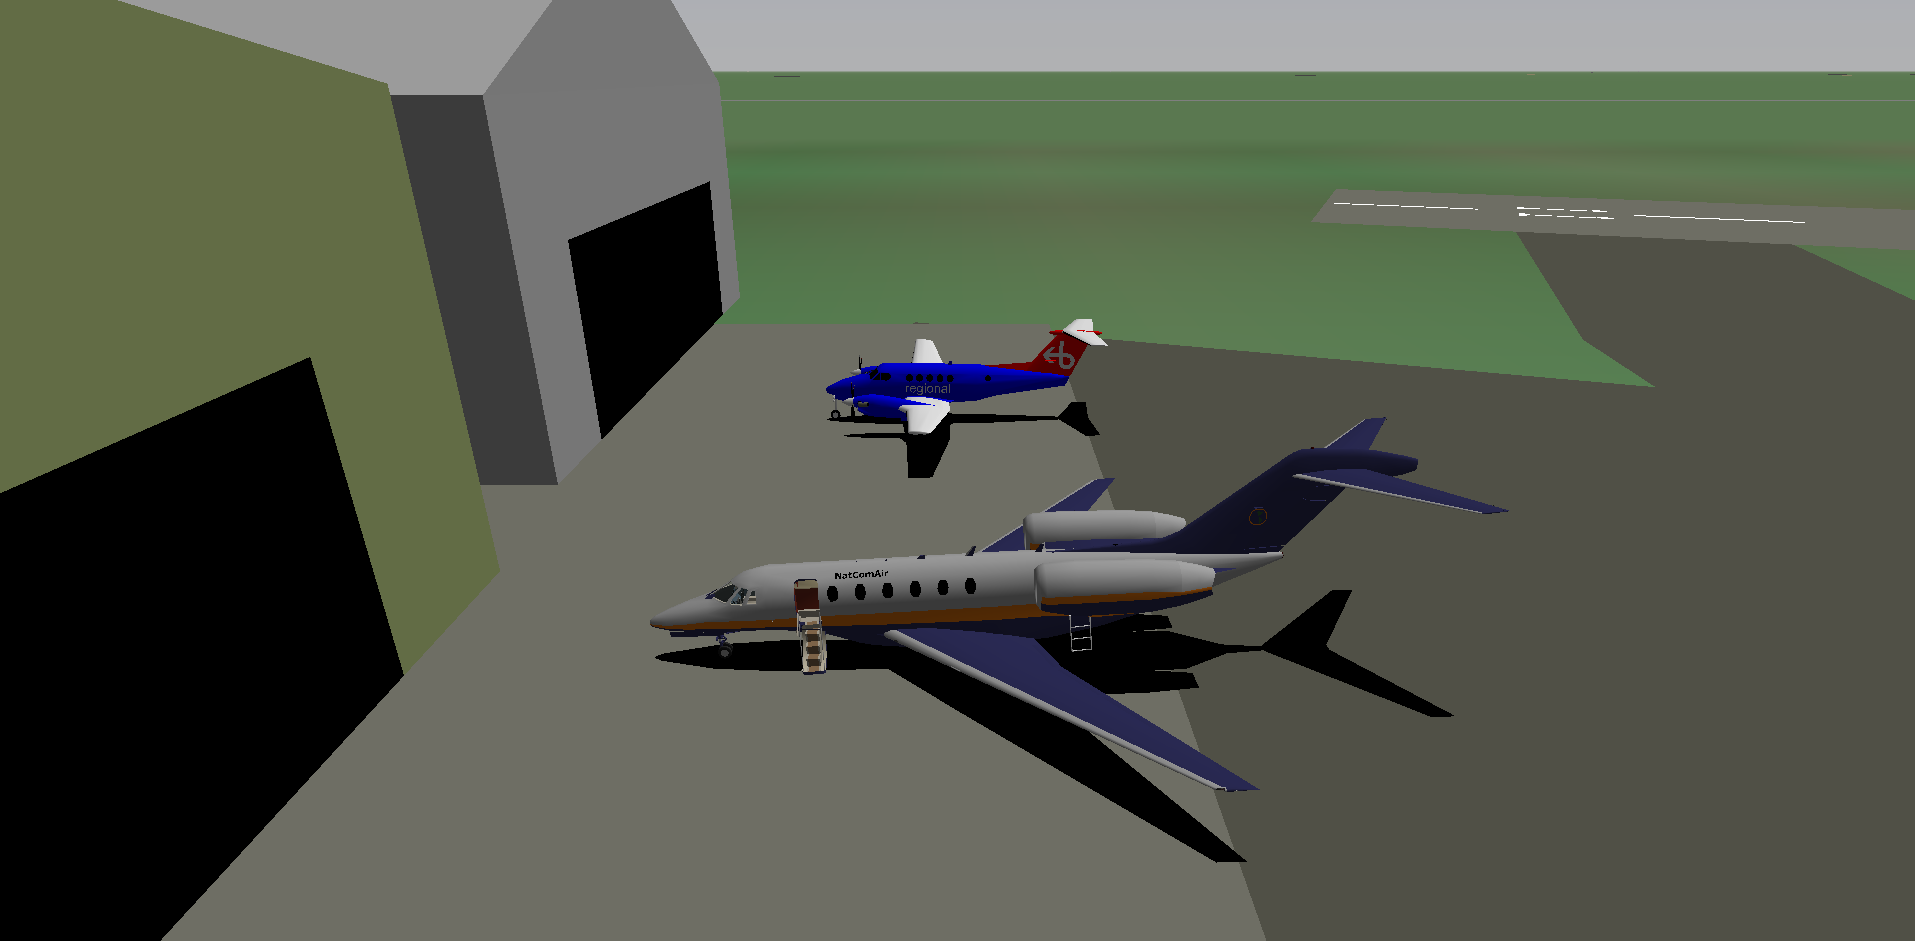 CitX_KingAir200_at_MKL.png